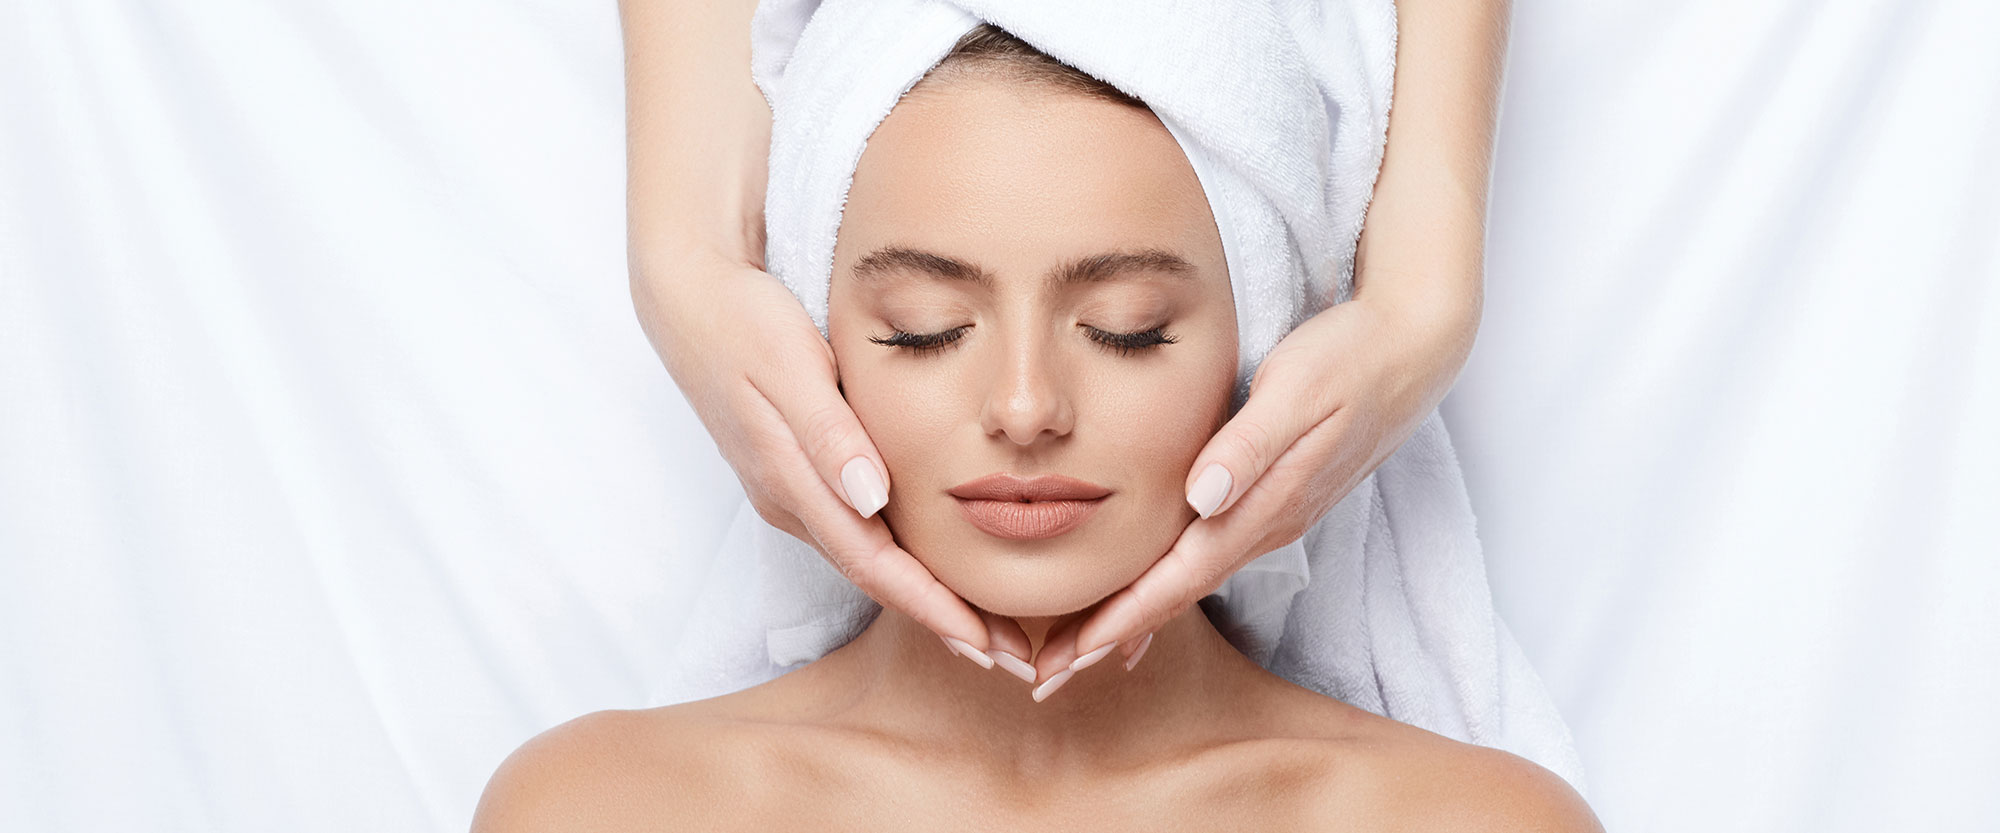 Medical Aesthetic Spa